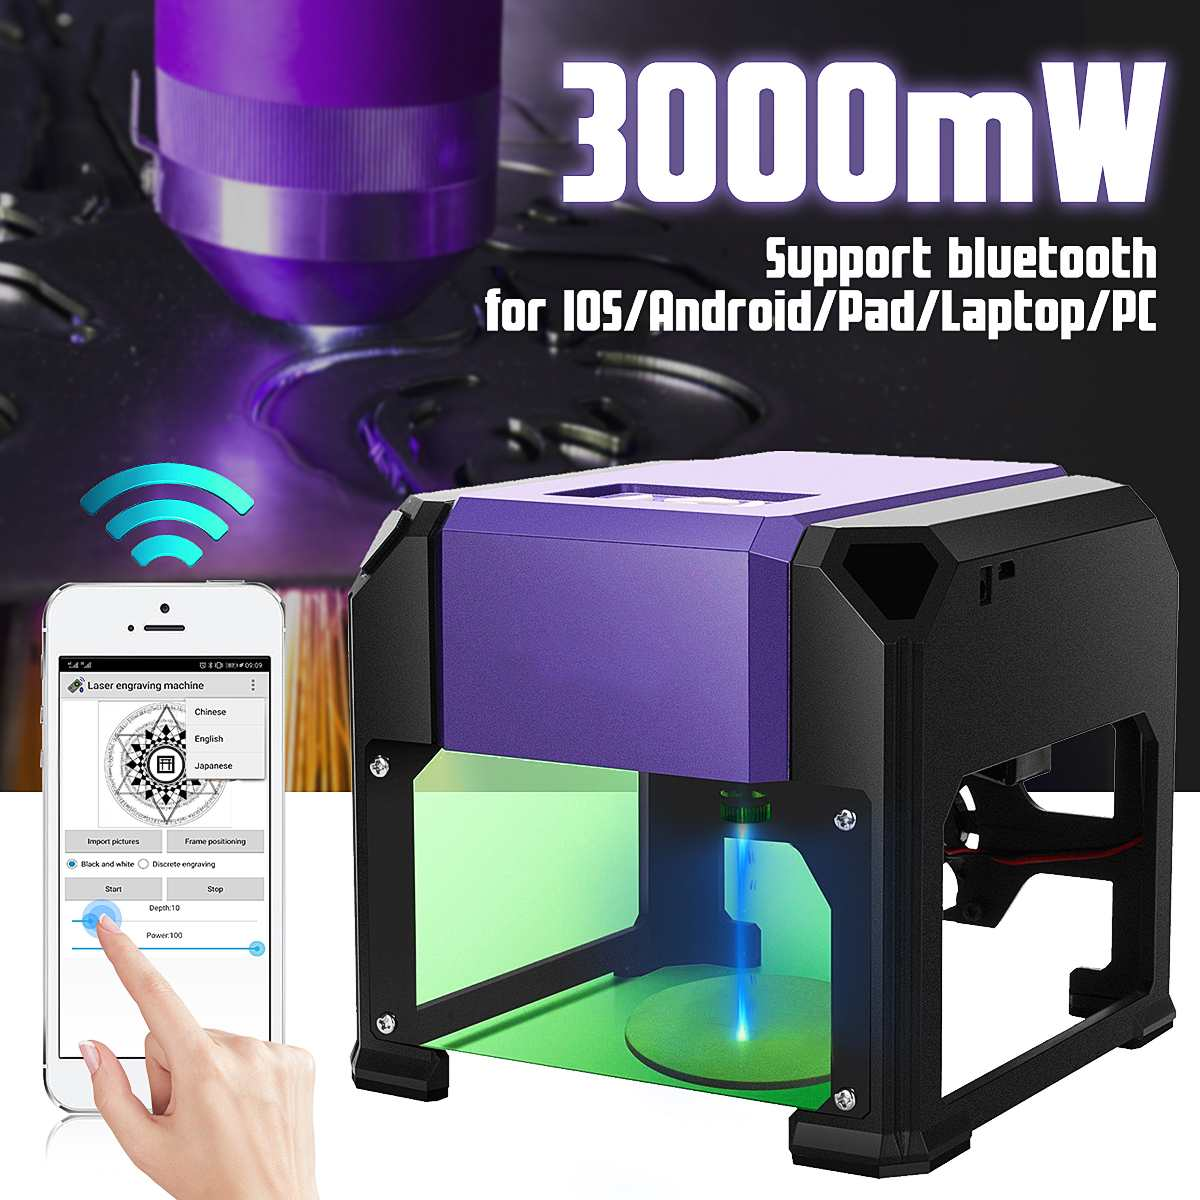 Upgrade Bluetooth Mini 3000MW Purple DIY Engraver Desktop Wood  Router/Cutter/Printer CNC Laser Engraving Machine AC 110-220V